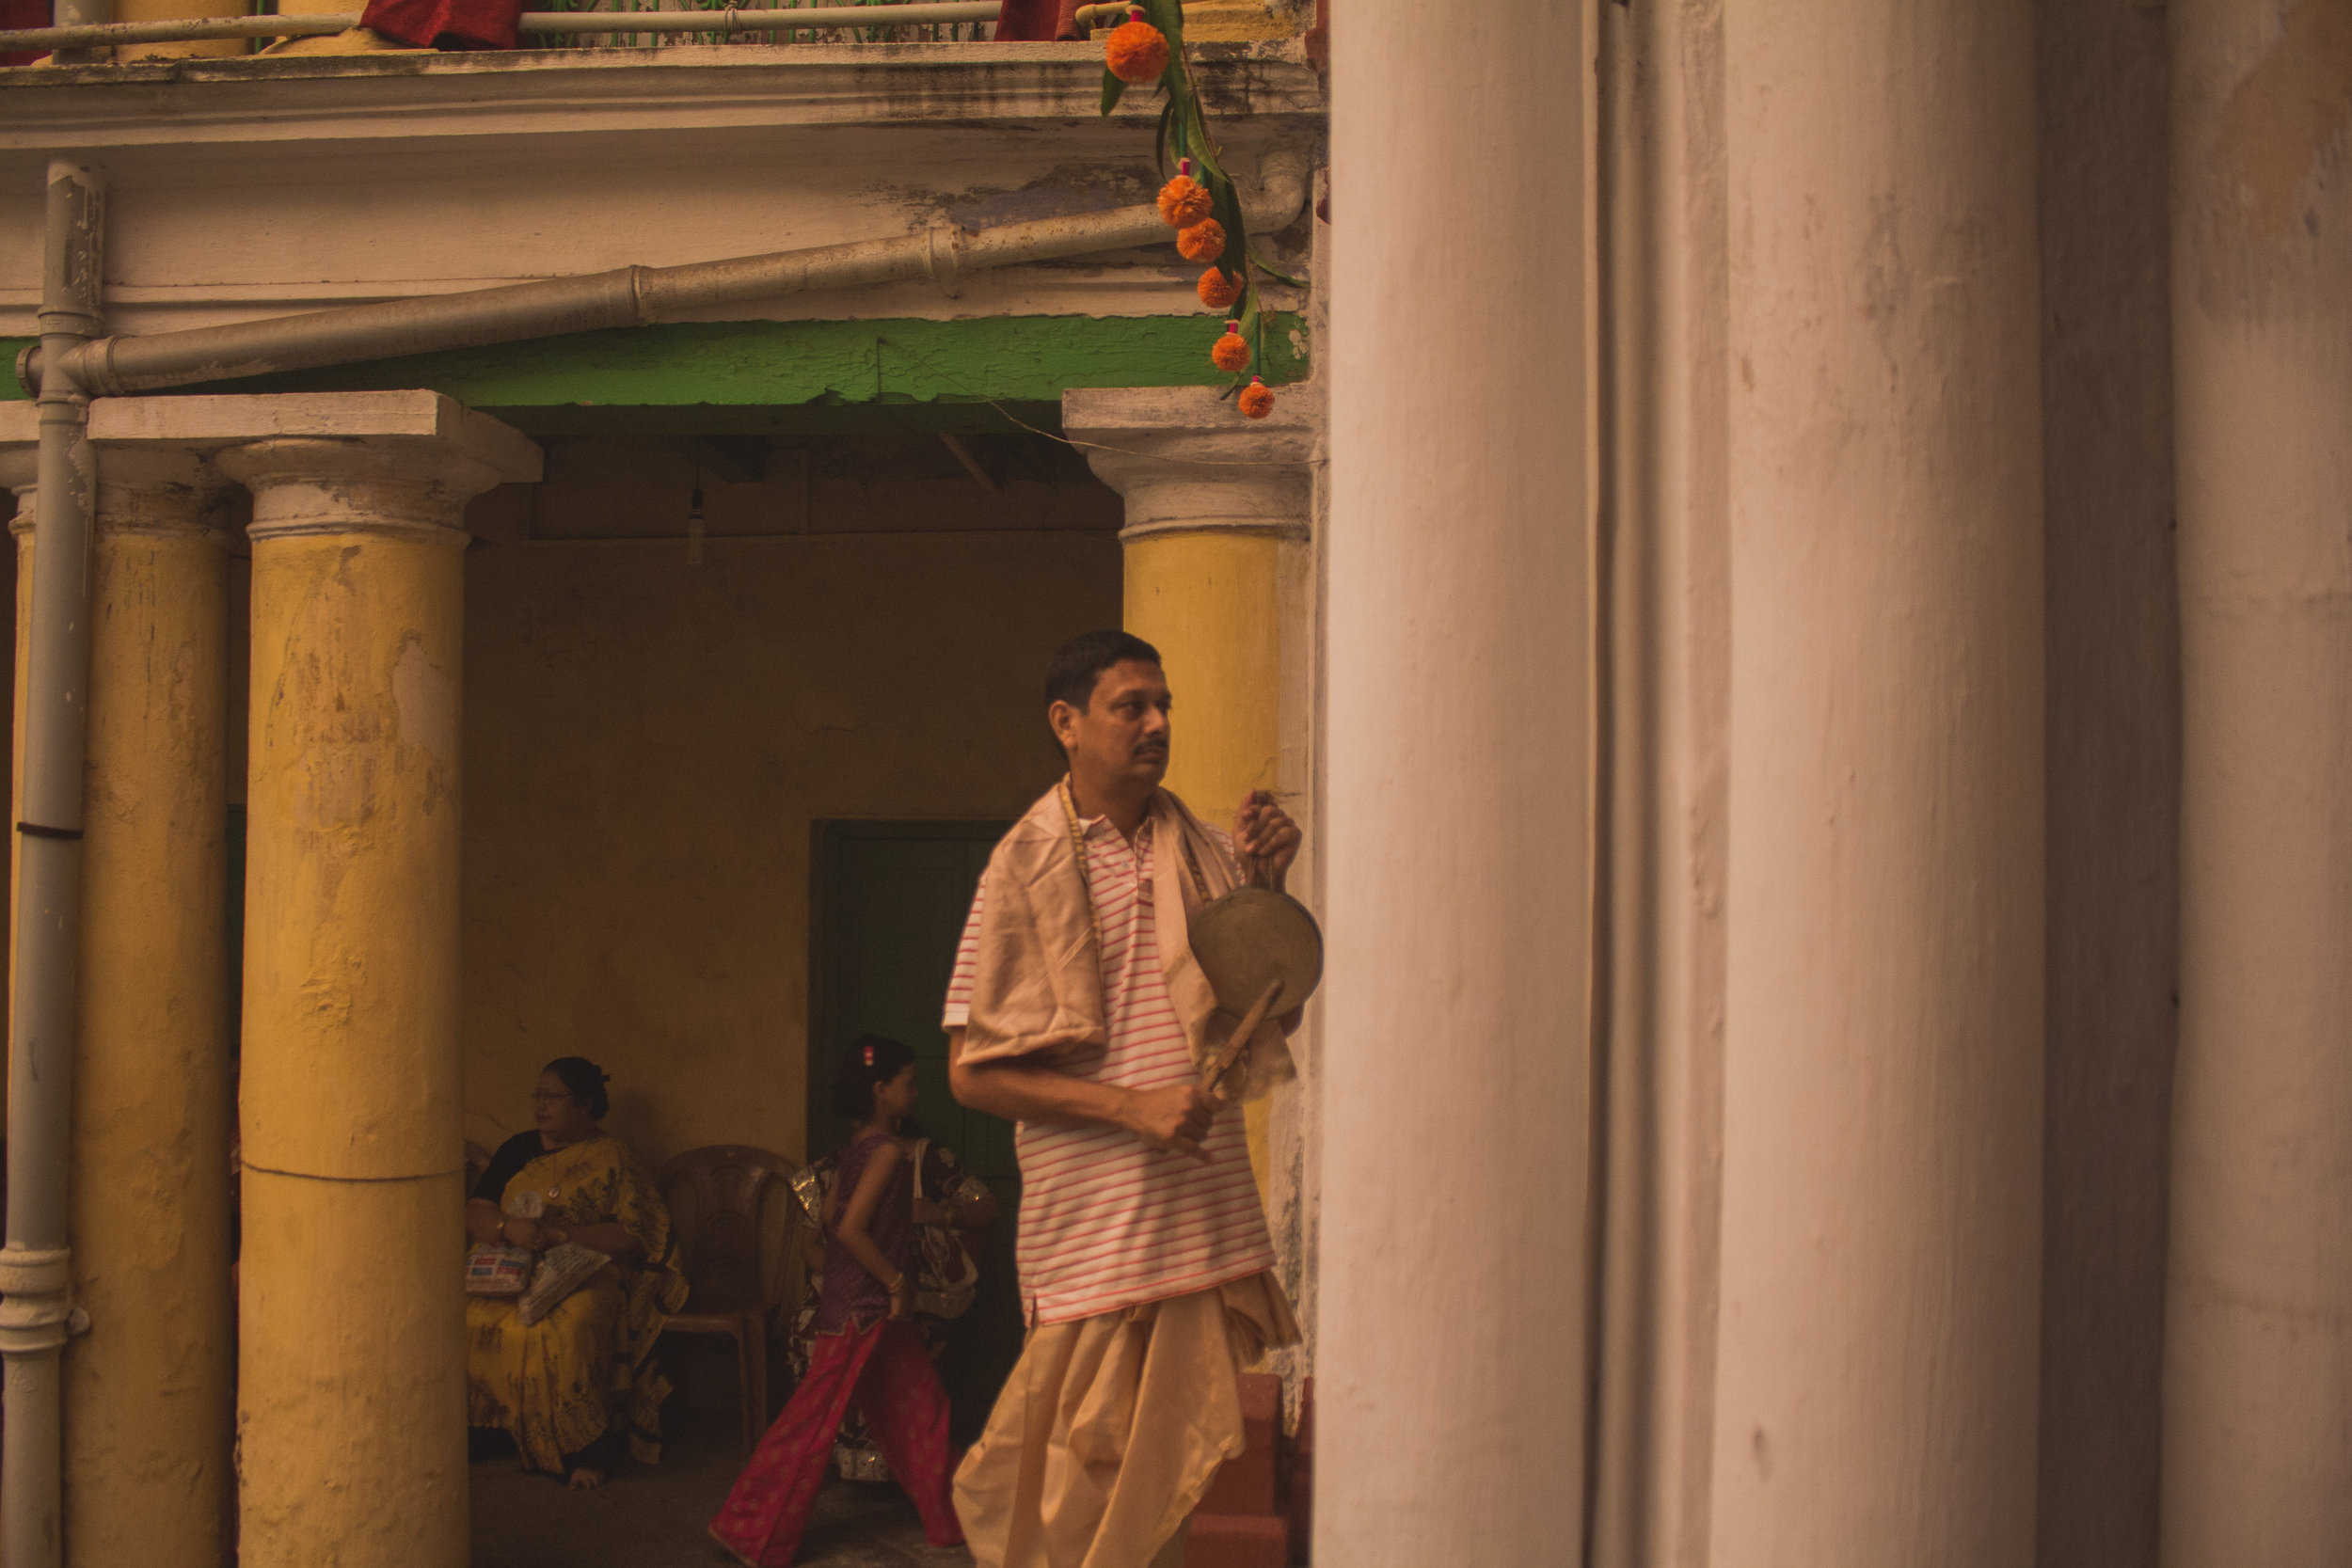 Music is a big part of such ceremonies. Here, a member of the house is seen playing the  kashor , a metal cymbal-like instrument suspended by a rope. The player usually beats the instrument to the rhythm of the  dhak .